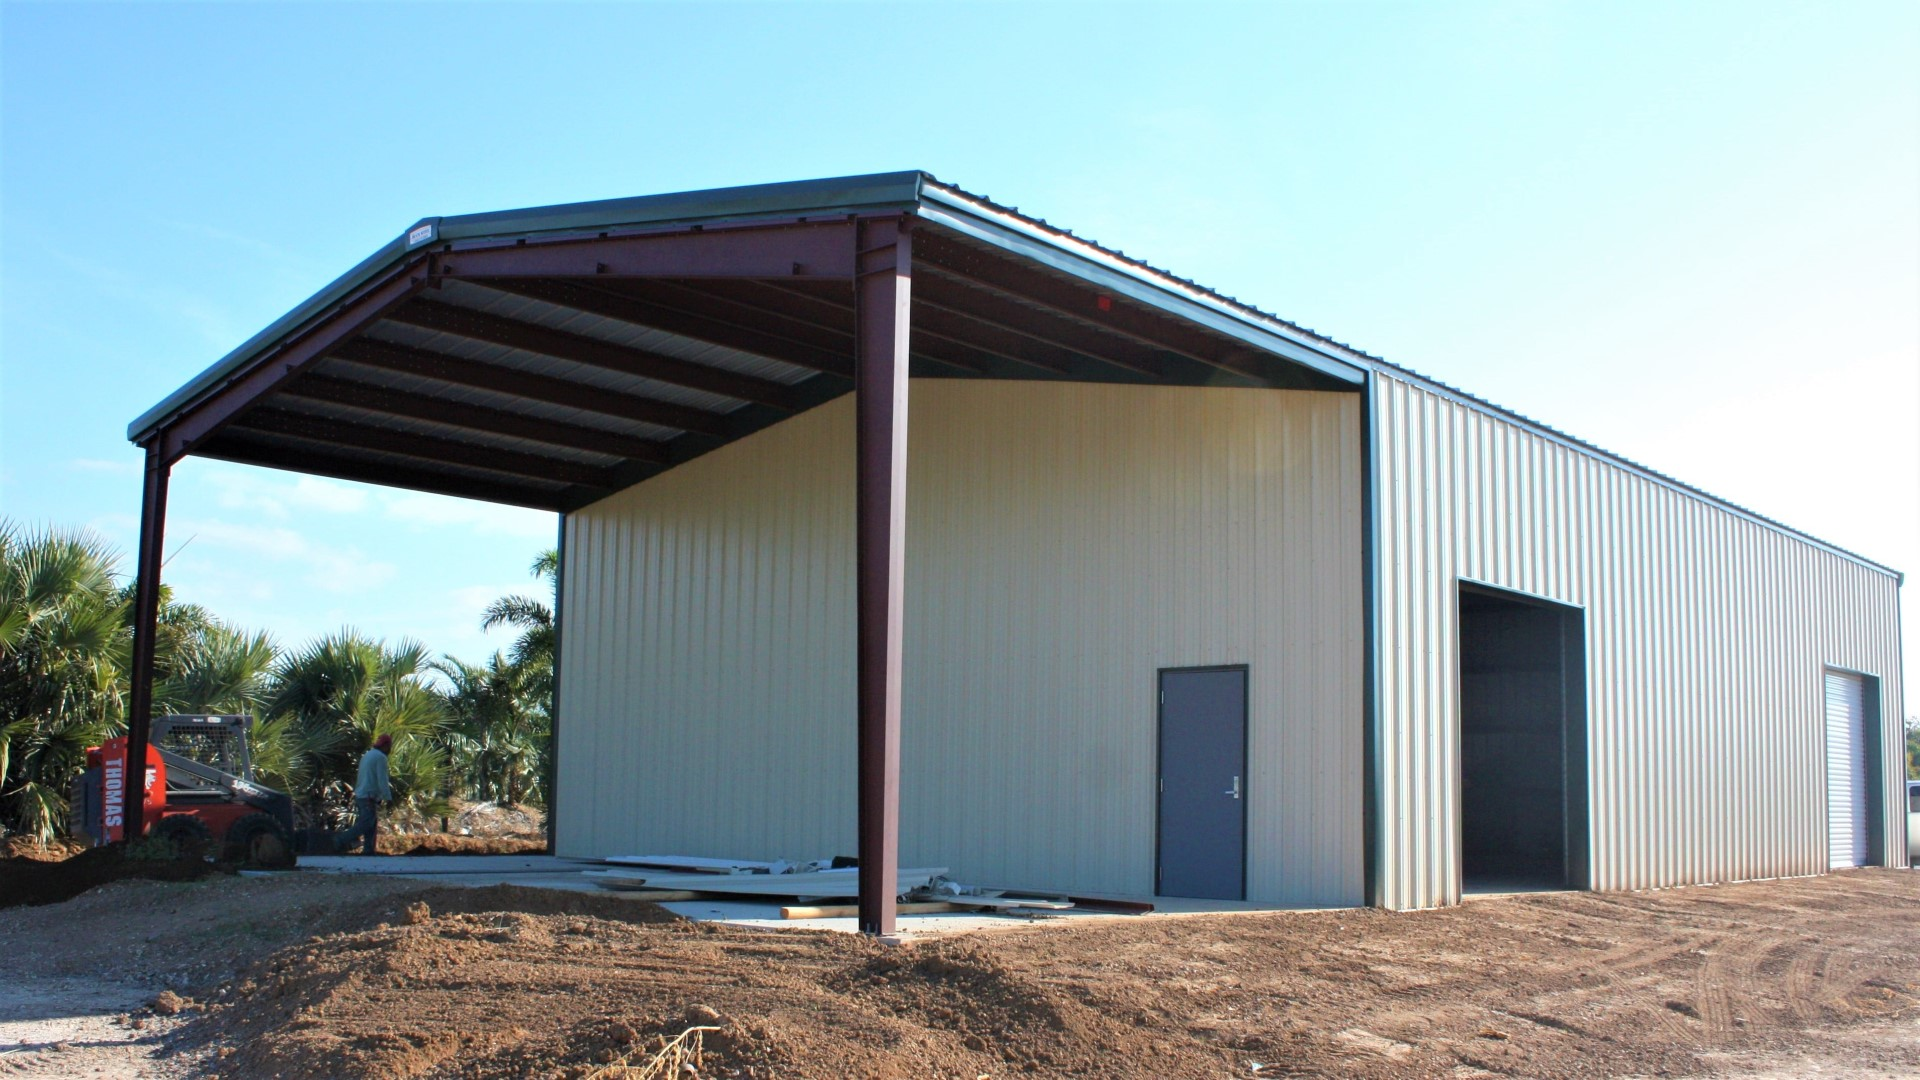 Farm steel storage building with inset bay, tan color with green trim.